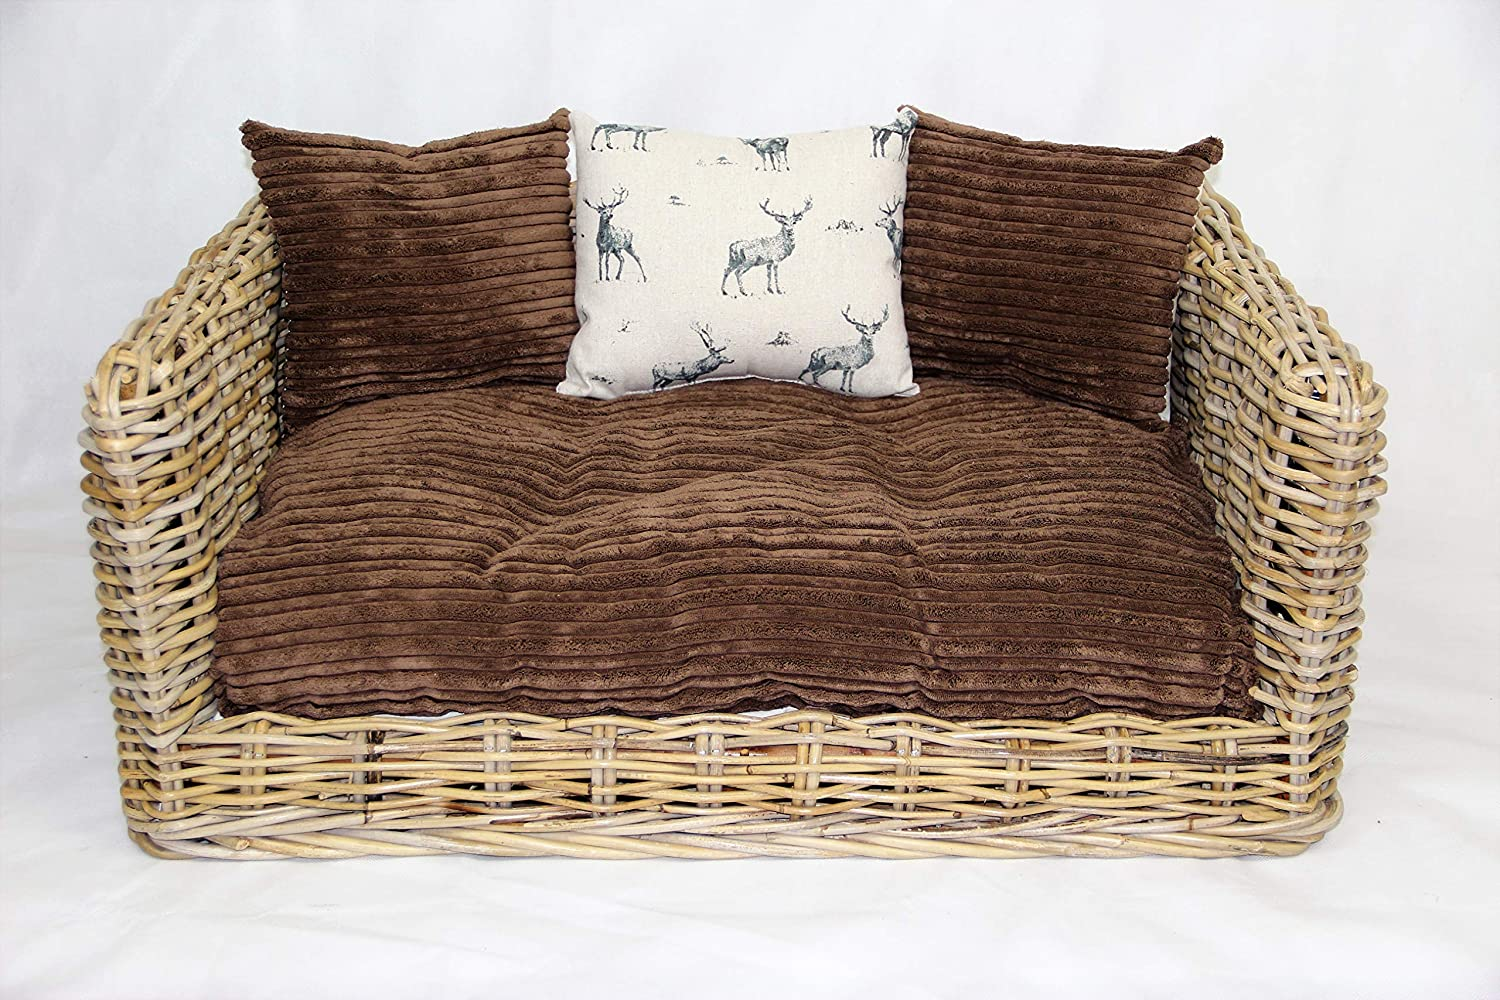 Rattan Dog Cat Sofa Bed available in 3 sizes BROWN WITH STAG CUSHIONS (SMALL)